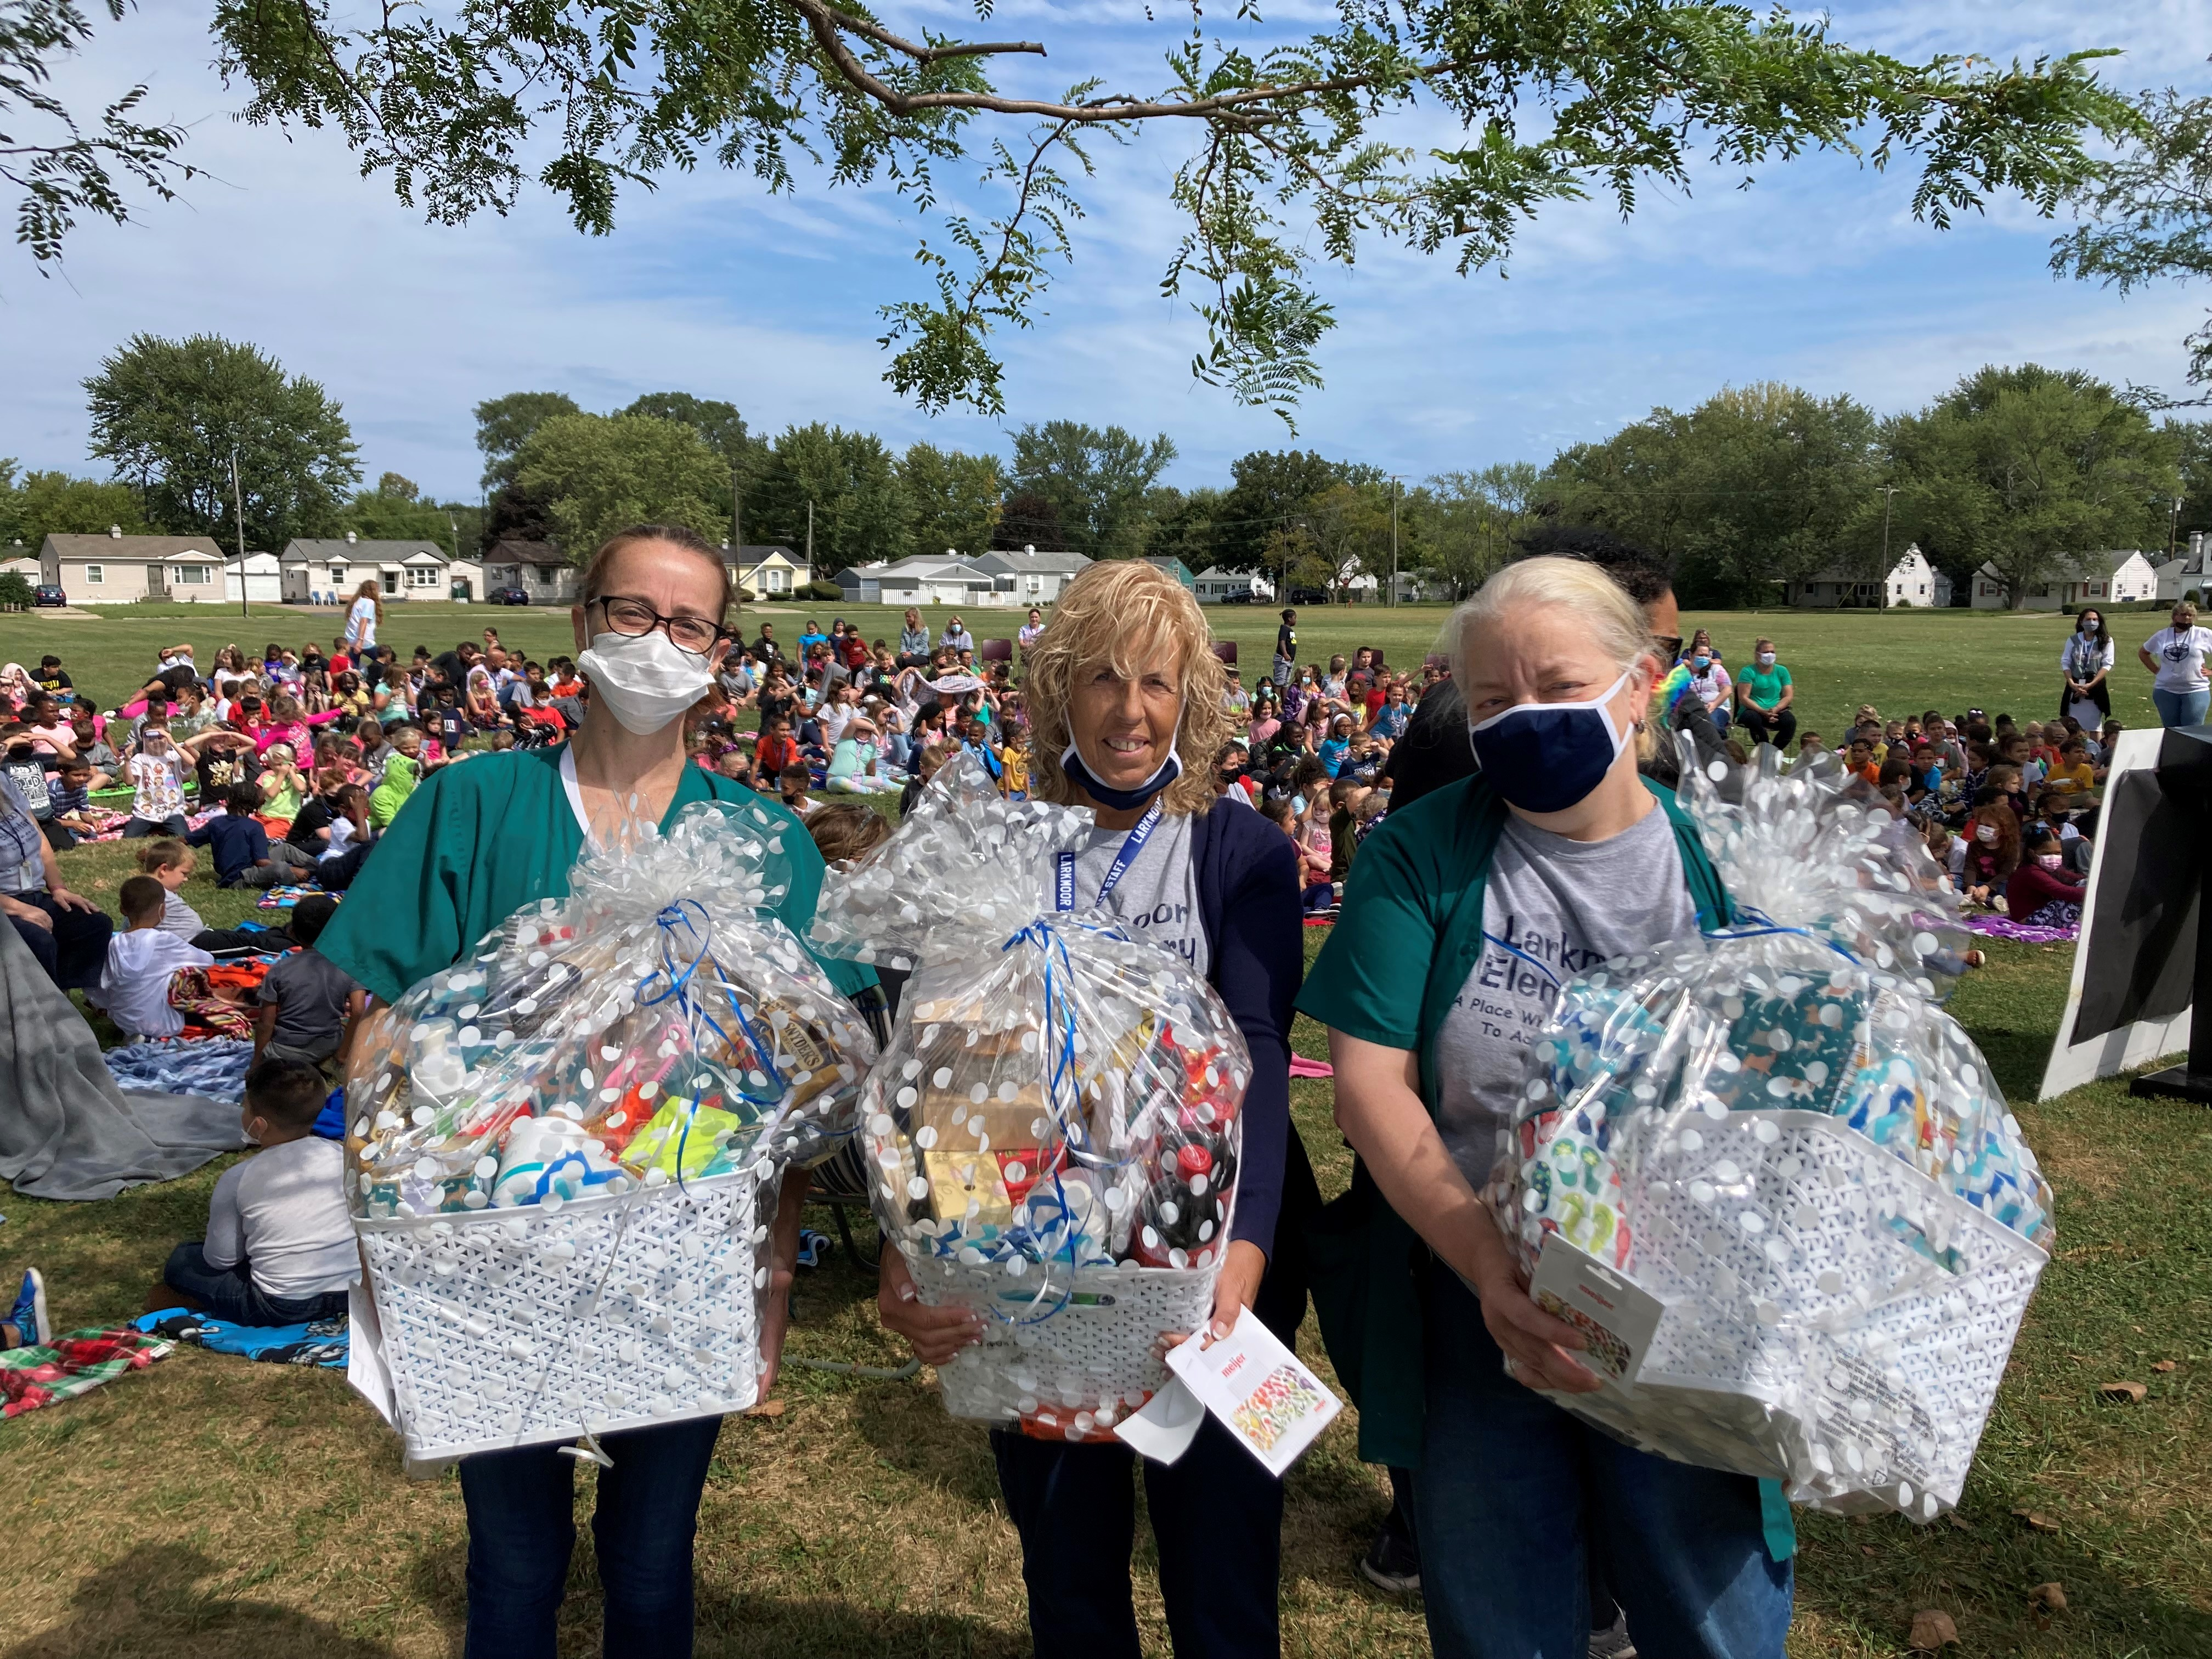 Three Larkmoor Elementary School staff members hold gift baskets and gift card from Meijer, which recognized the staff members on Wednesday, September 15, 2021